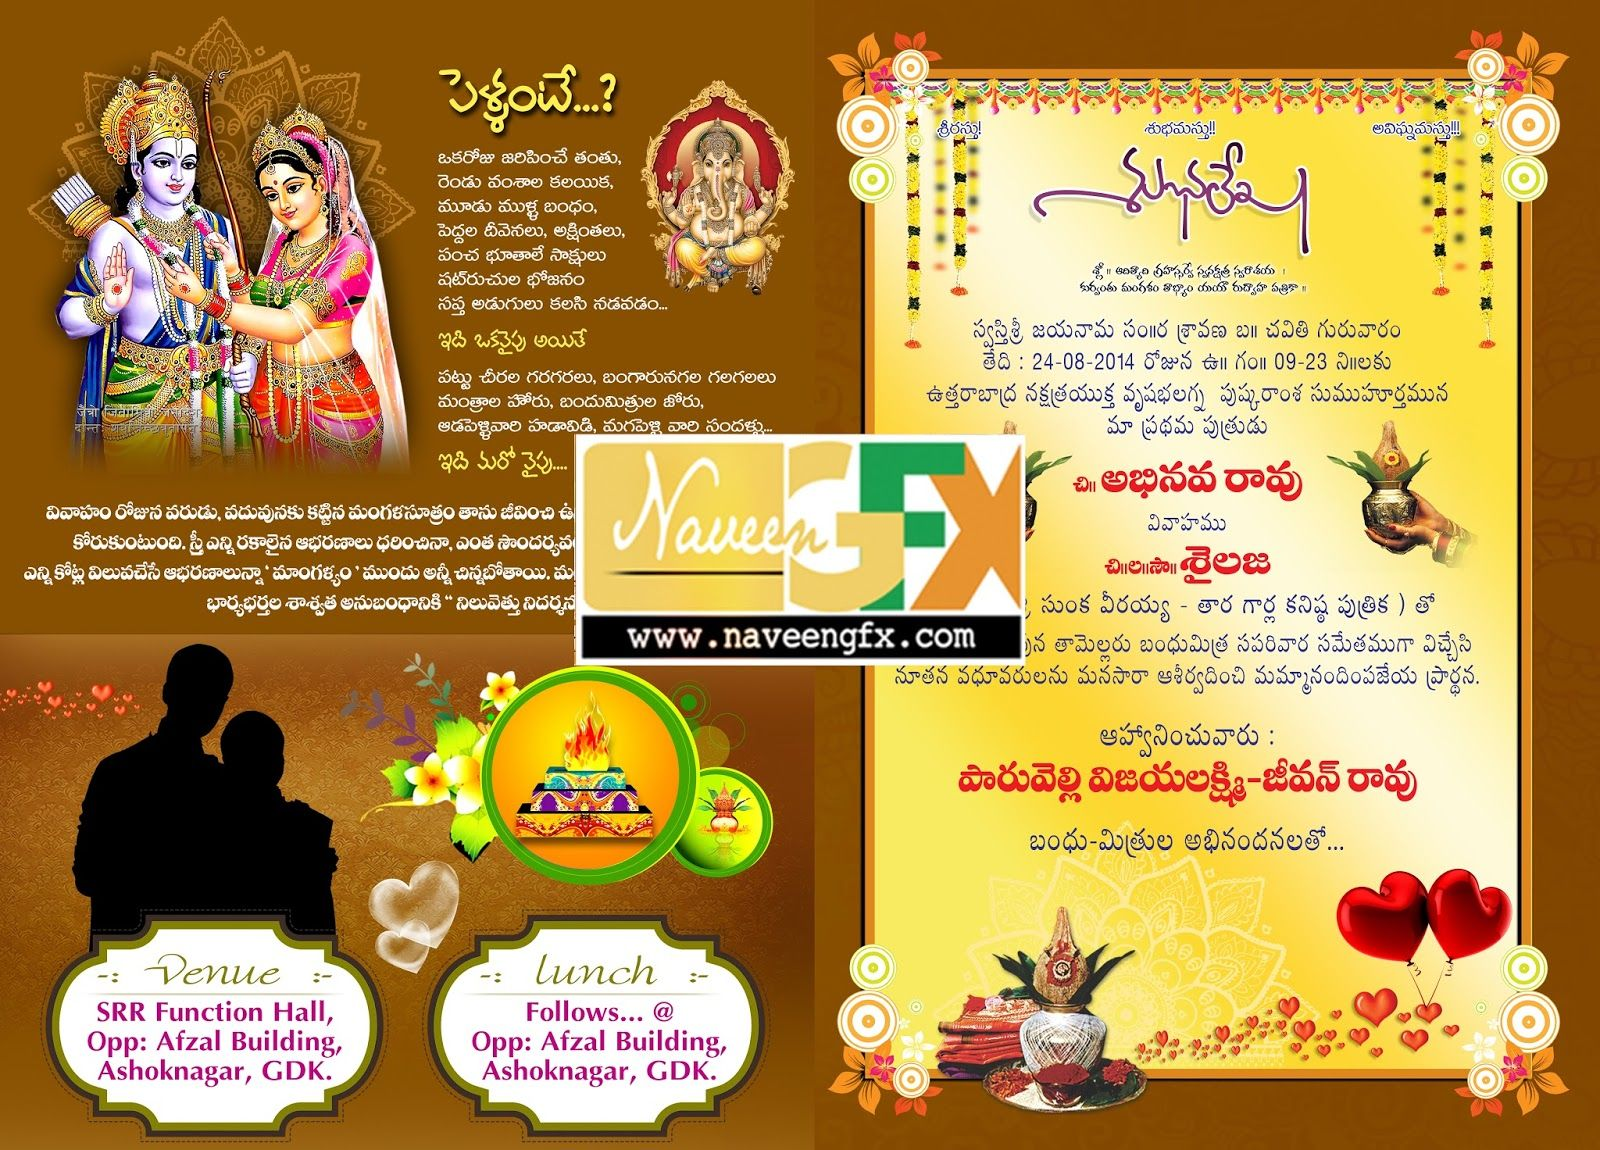 Indian Wedding Card Design Psd Template Free Downloads Naveengfx